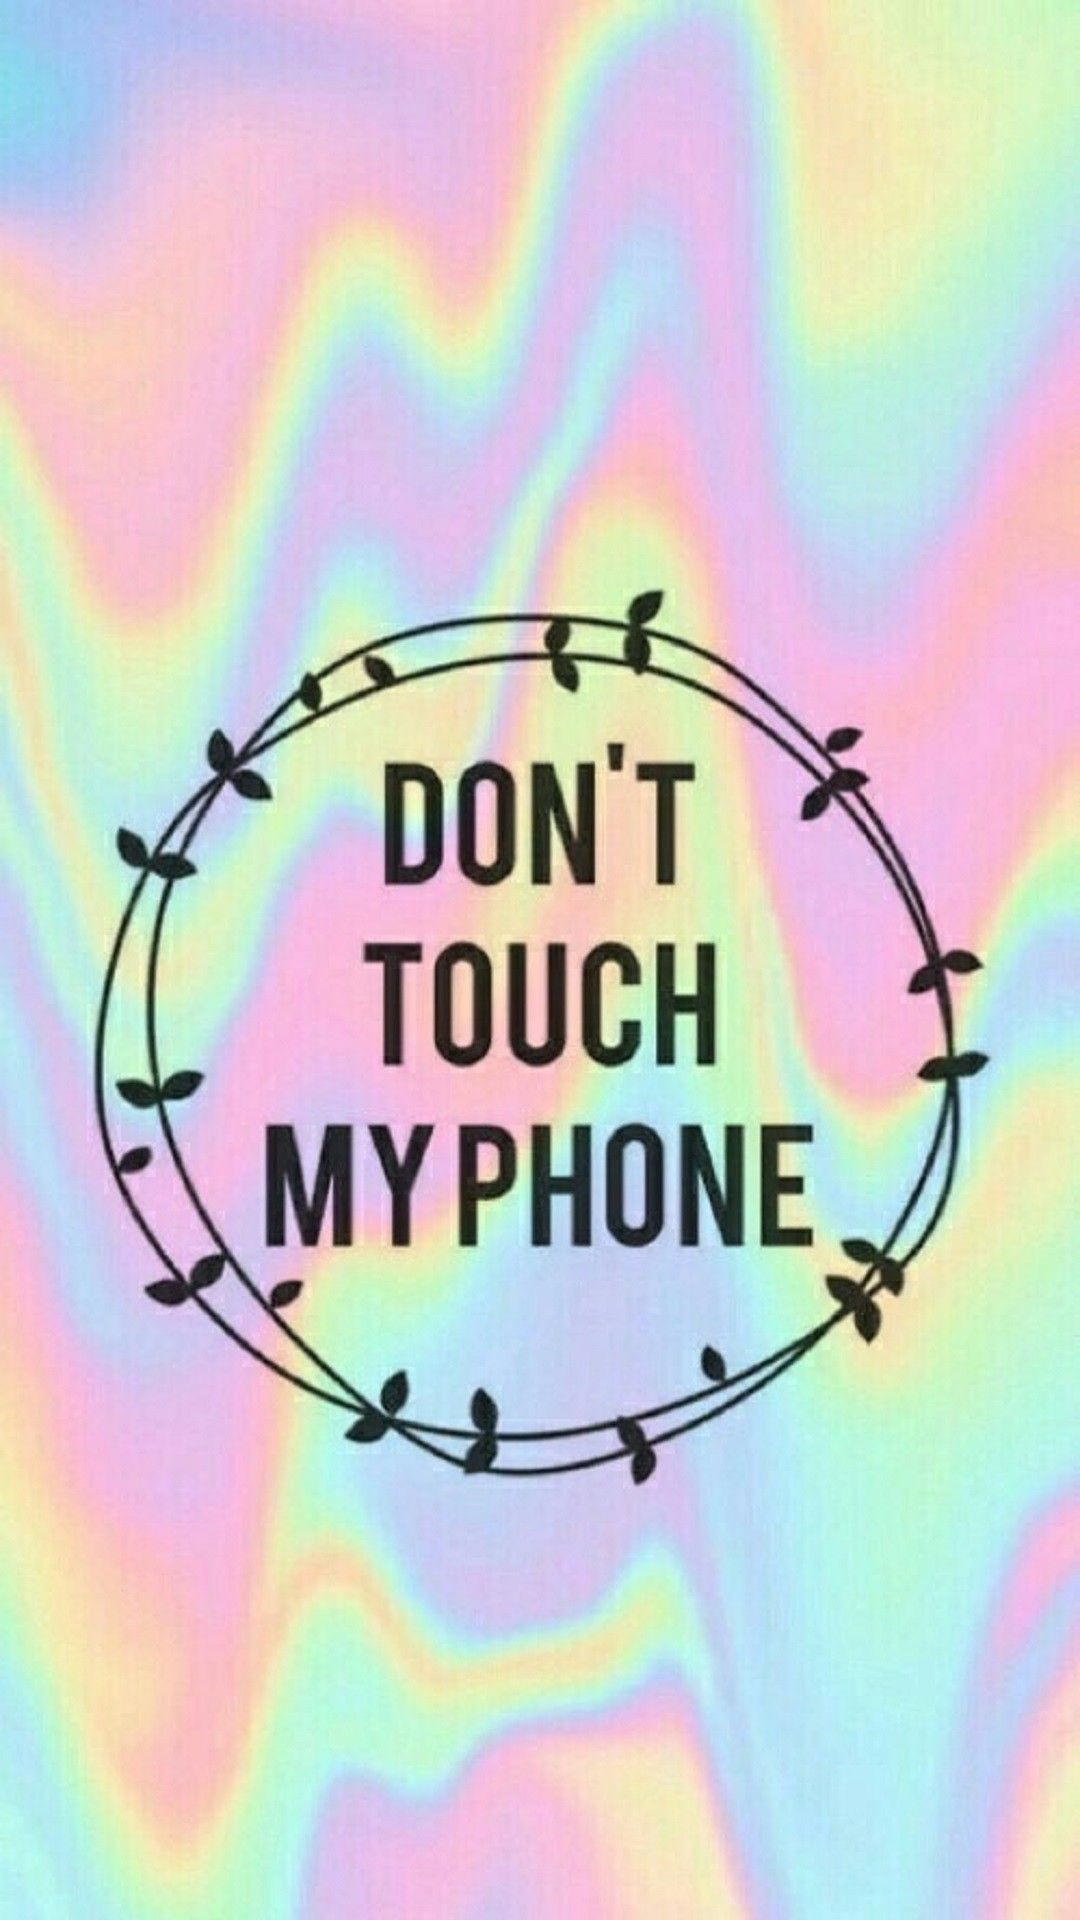 Dont touch my phone tap to see more donttouch my phone